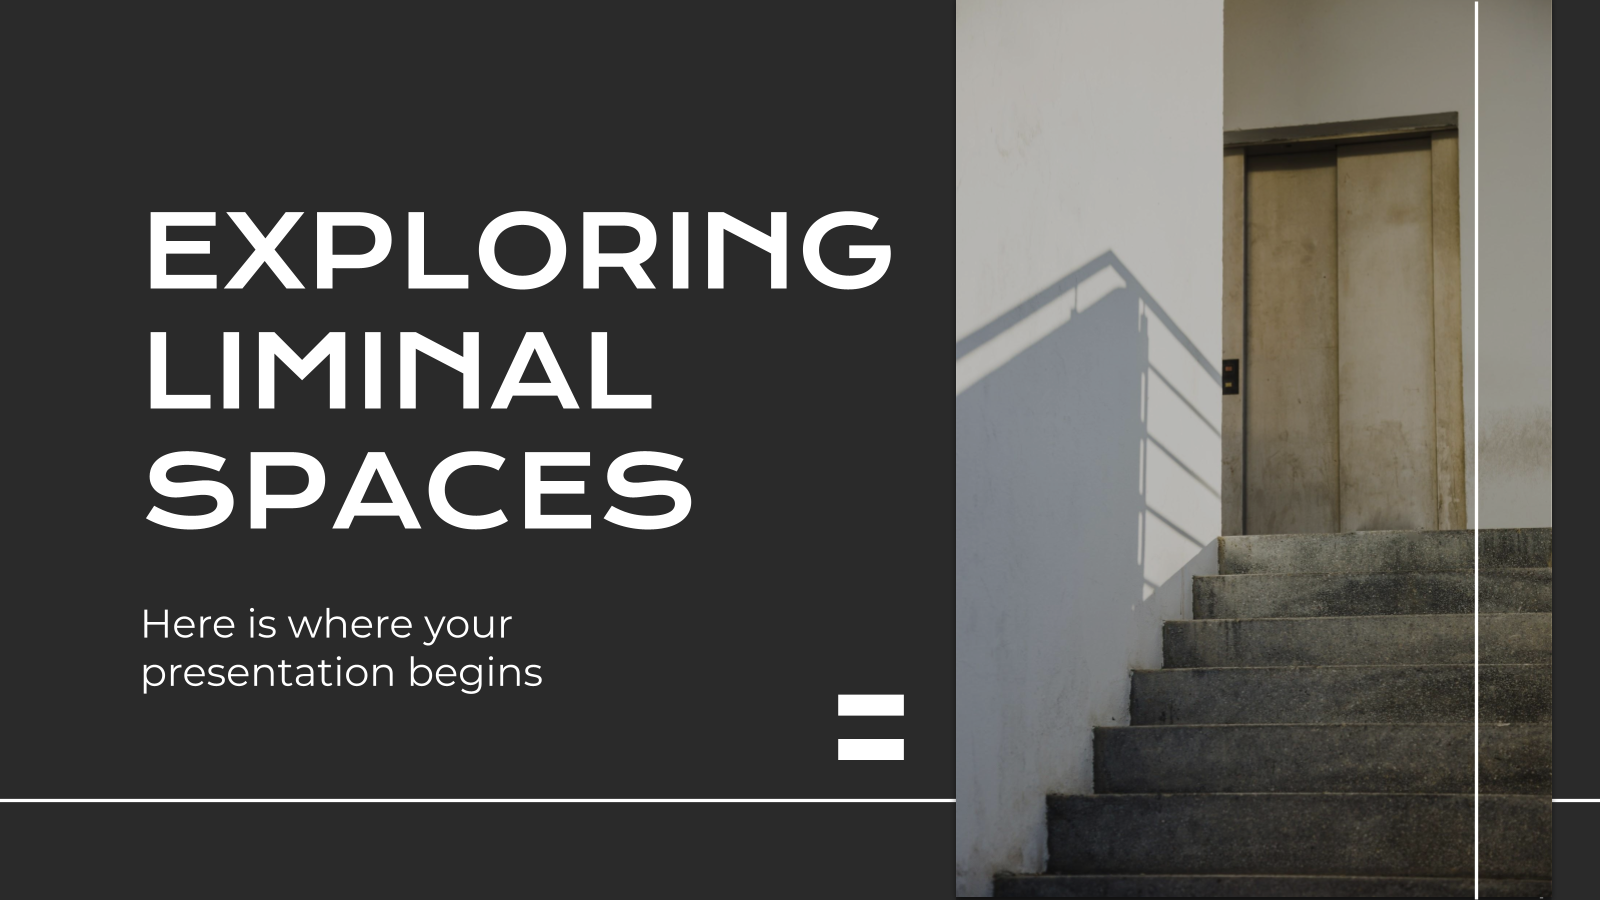 Exploring Liminal Spaces presentation template